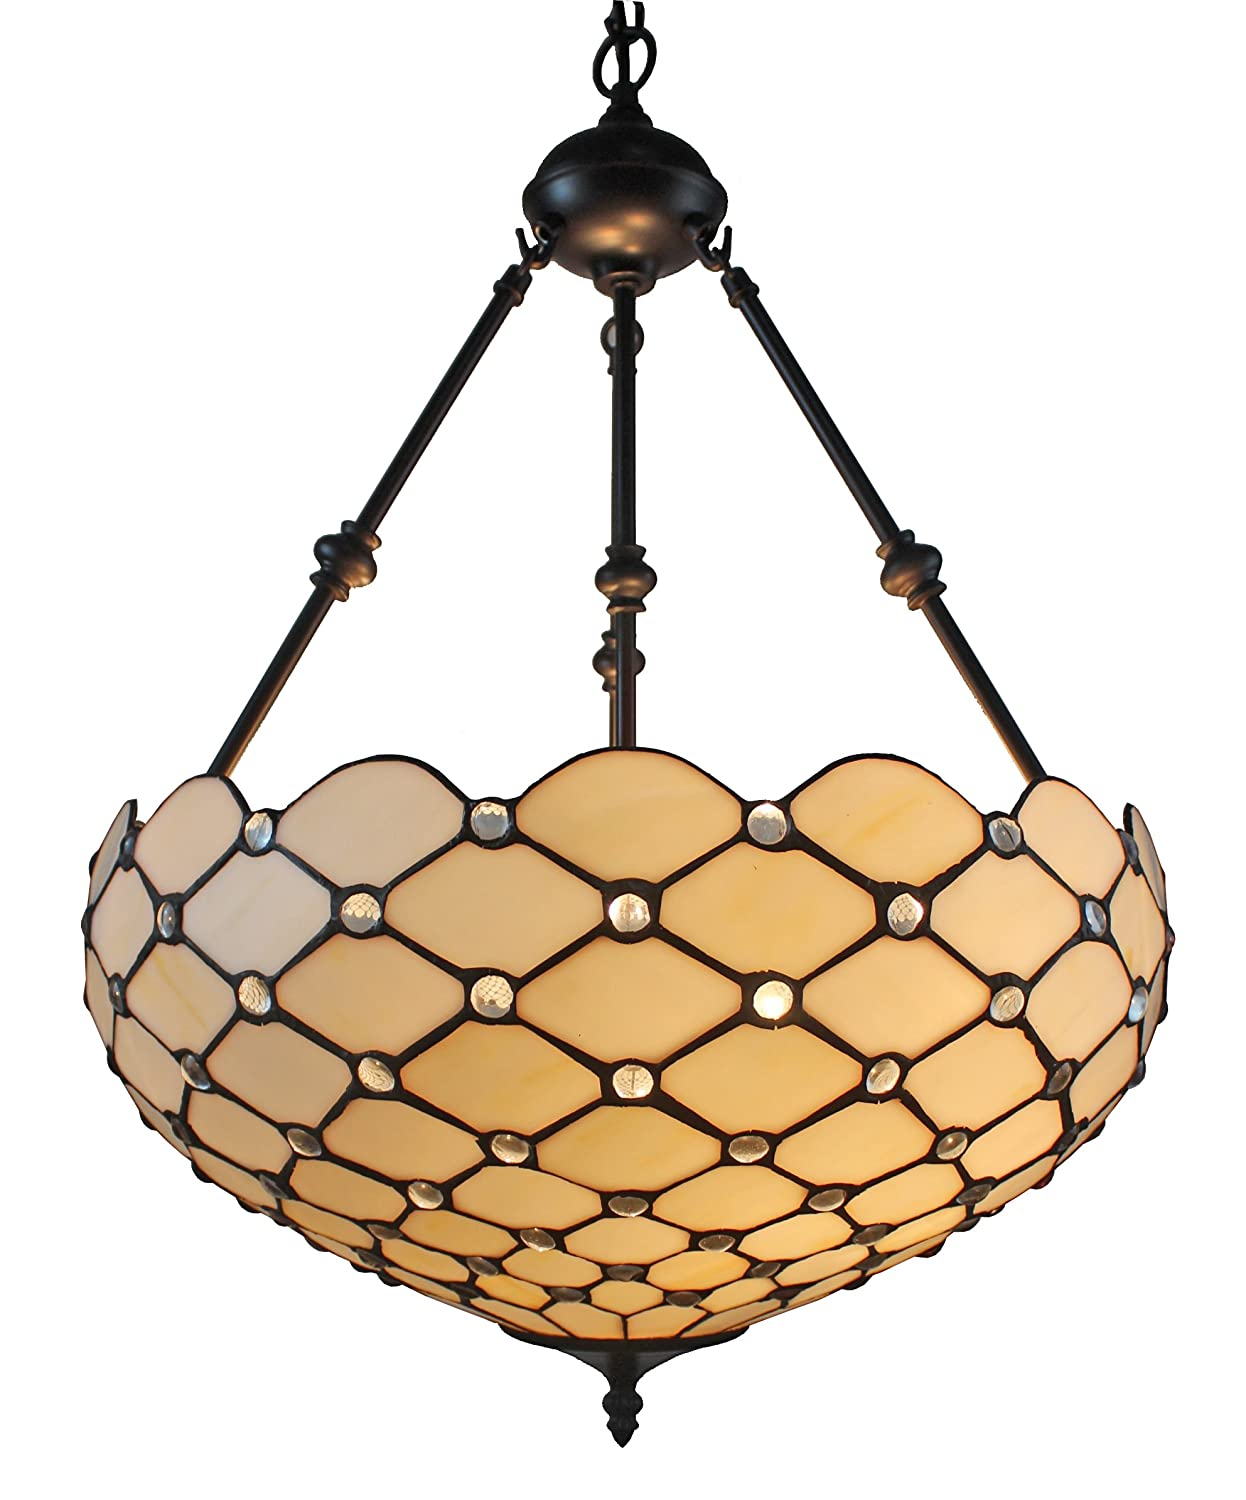 beautifull with pendant style light stunning hanging tiffany oksunglassesn interior decor lights us